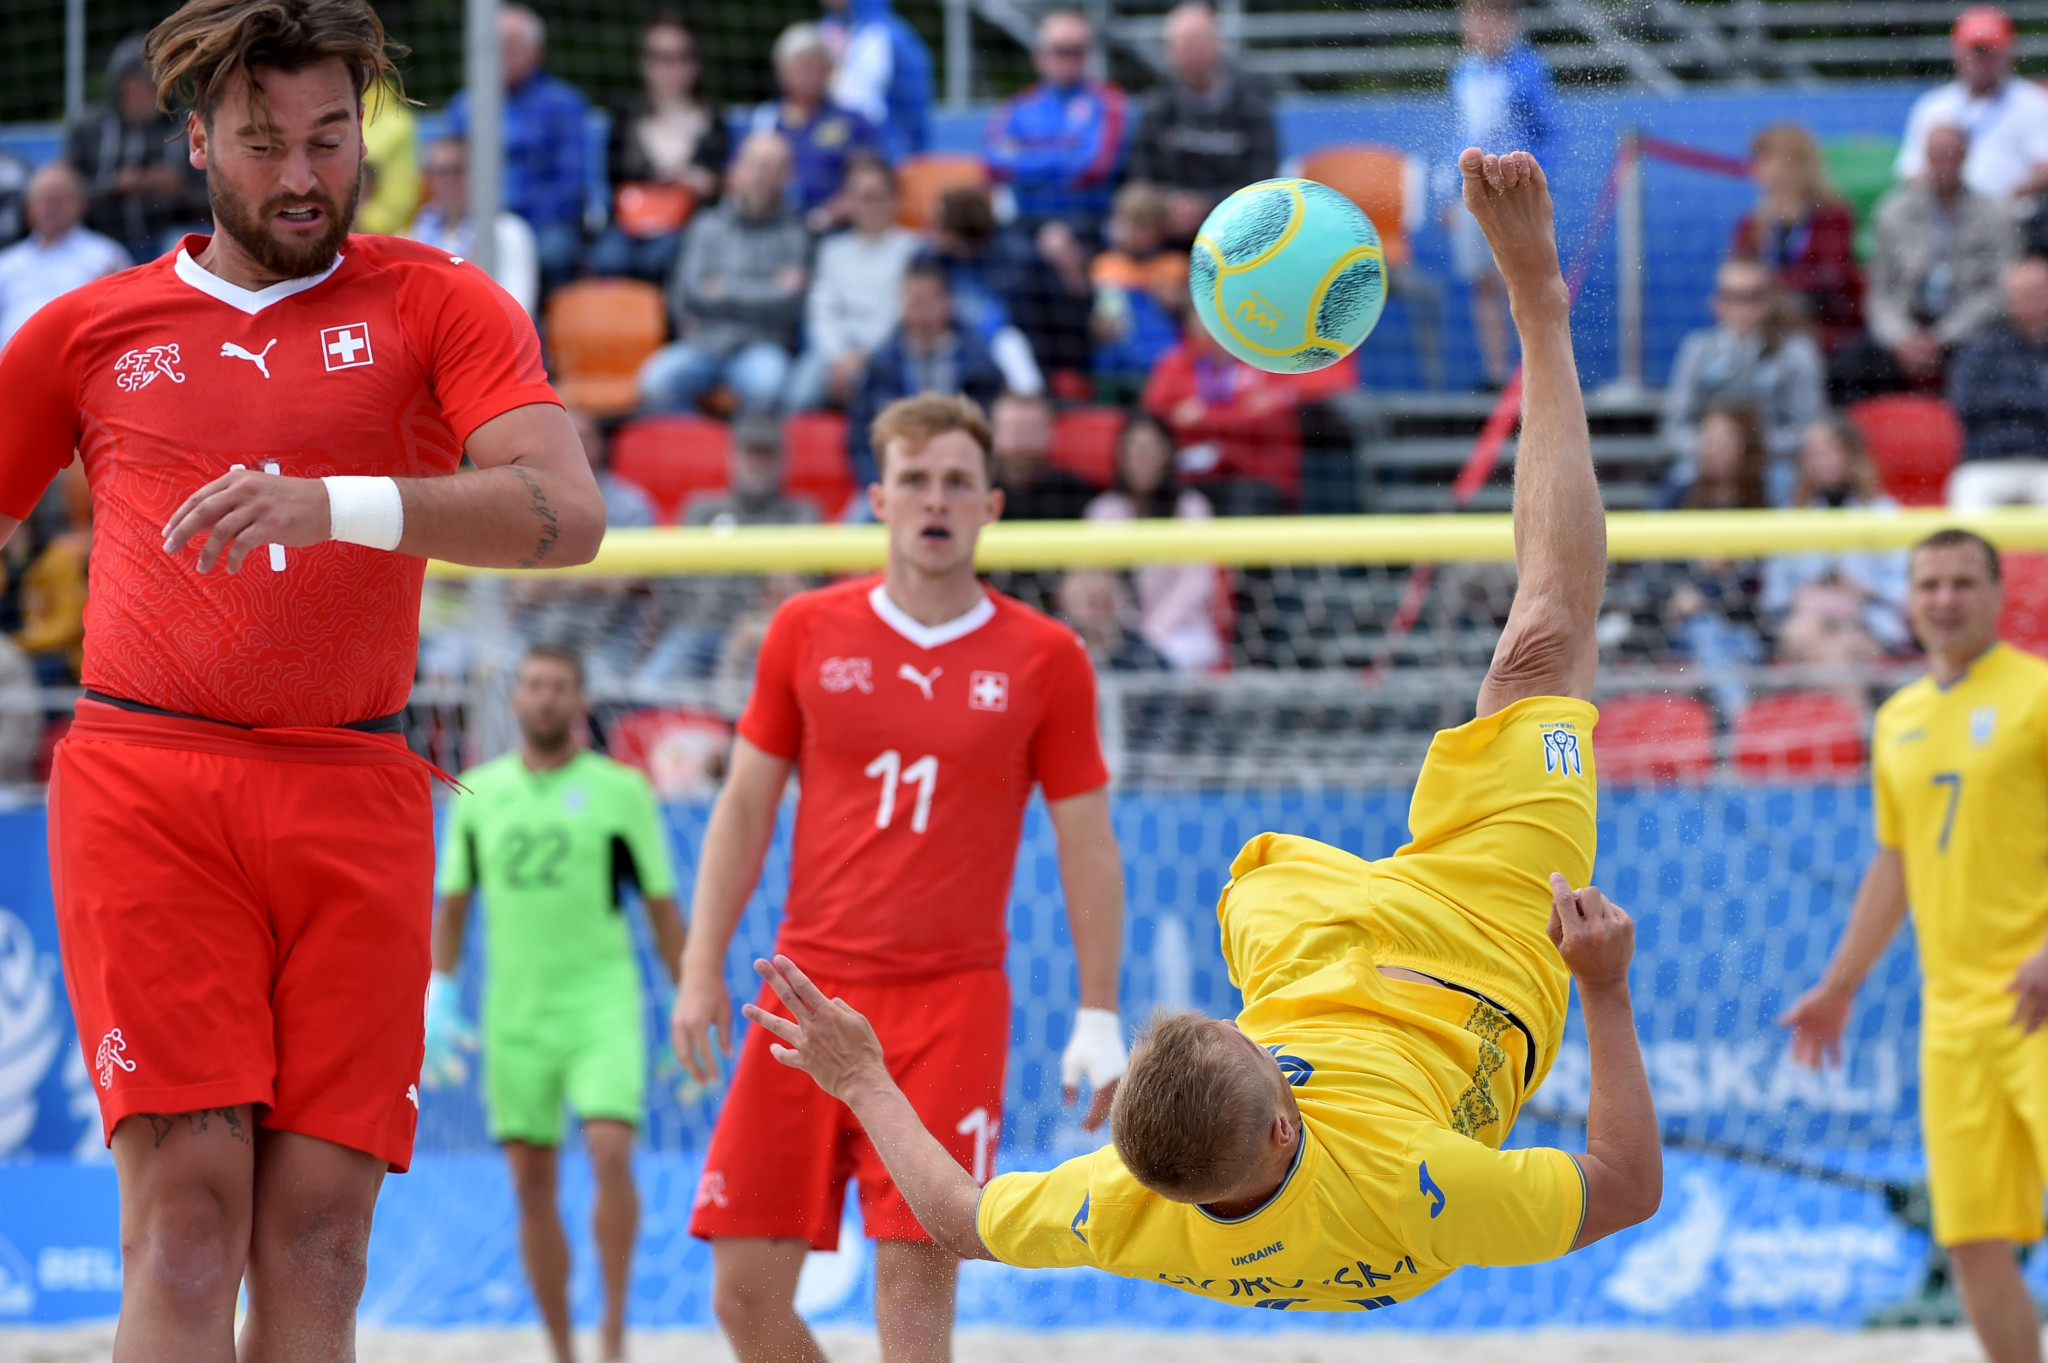 Swiss beach soccer team seek further glory at ANOC World Beach Games